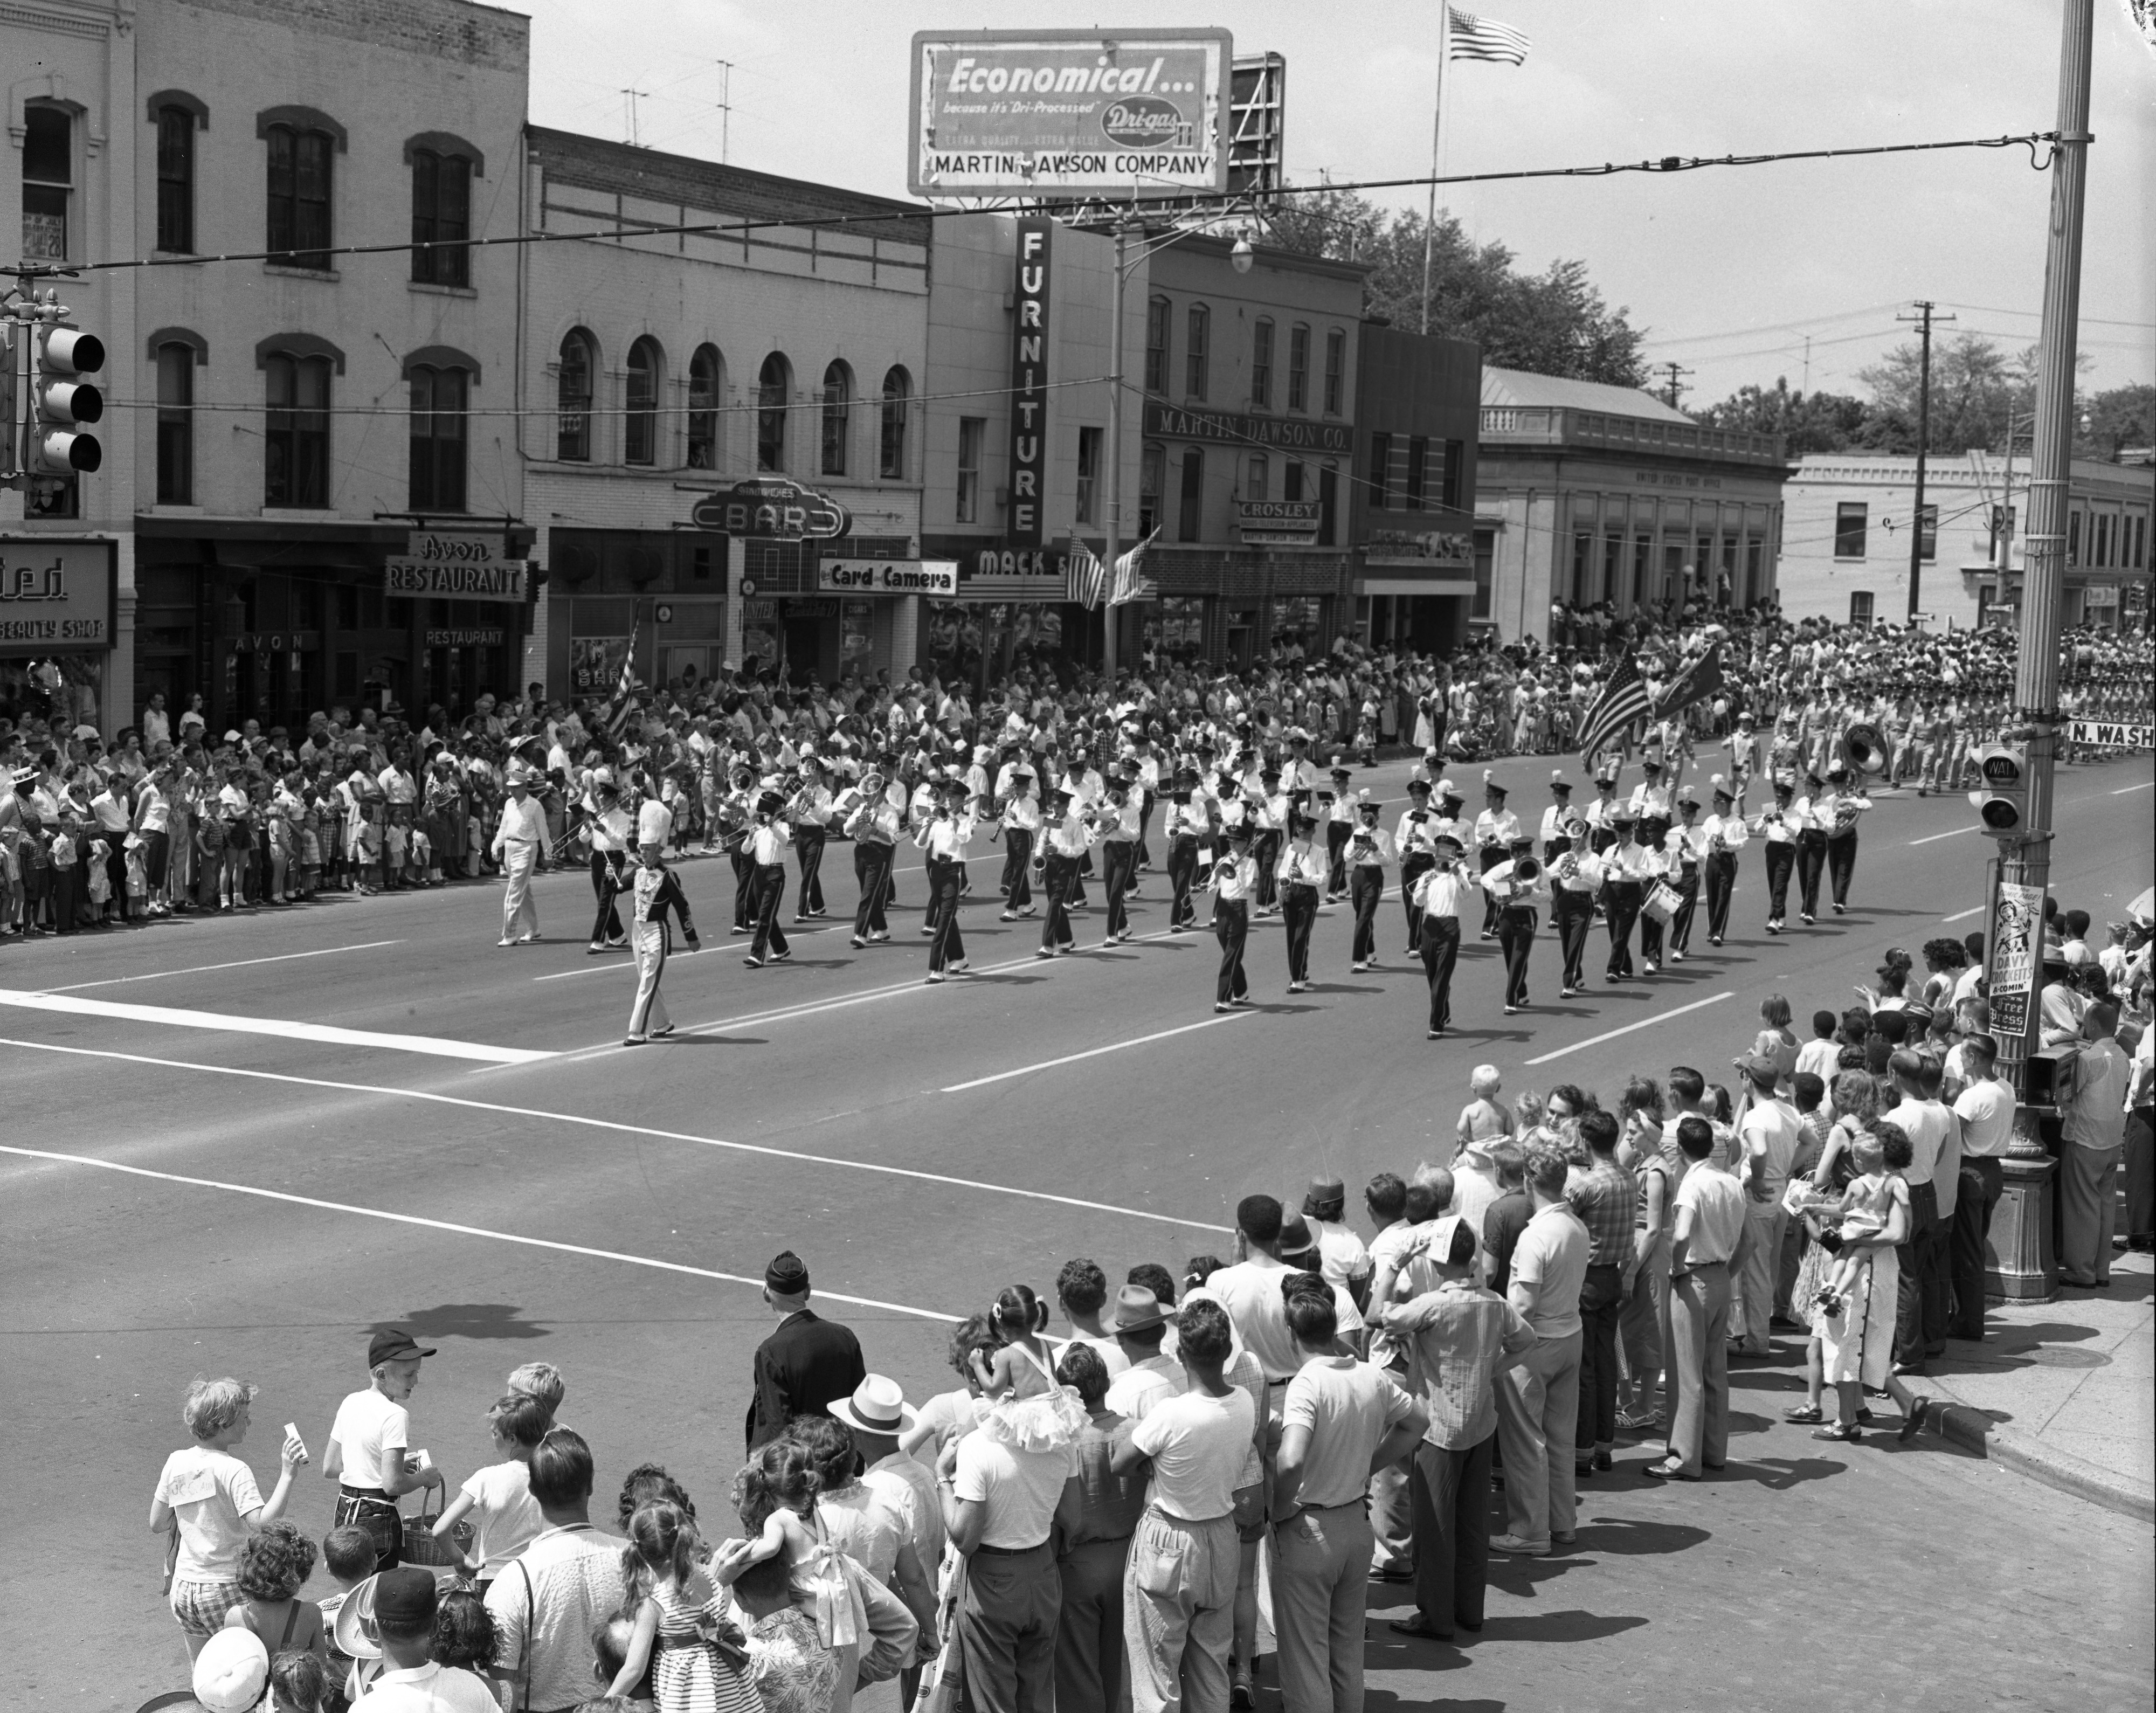 Ypsilanti High School Boy's Marching Band Entertain Record Crowd in Ypsilanti Fourth of July Parade, July 1955 image